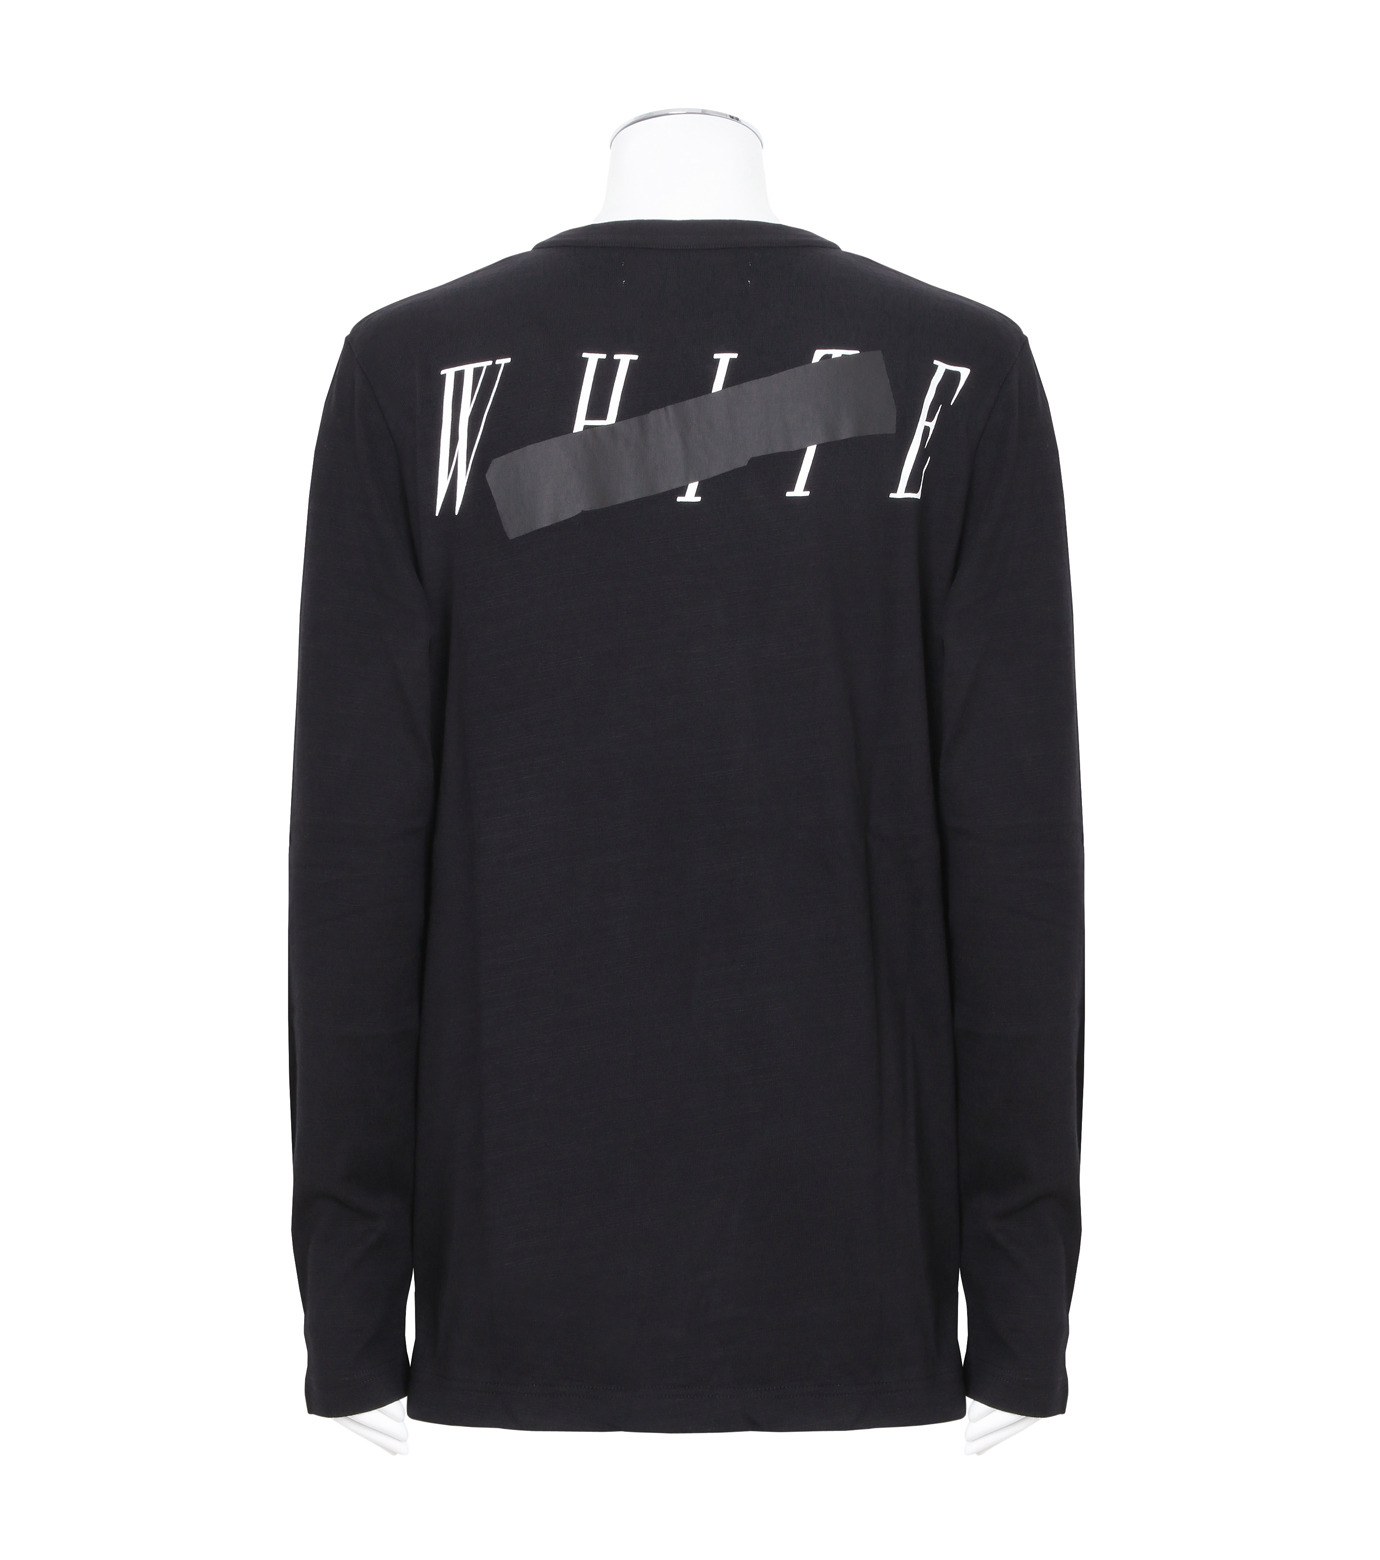 Off White(オフホワイト)のROCK MIRROR LONGSLEEVE-BLACK(カットソー/cut and sewn)-006S7001133-13 拡大詳細画像2